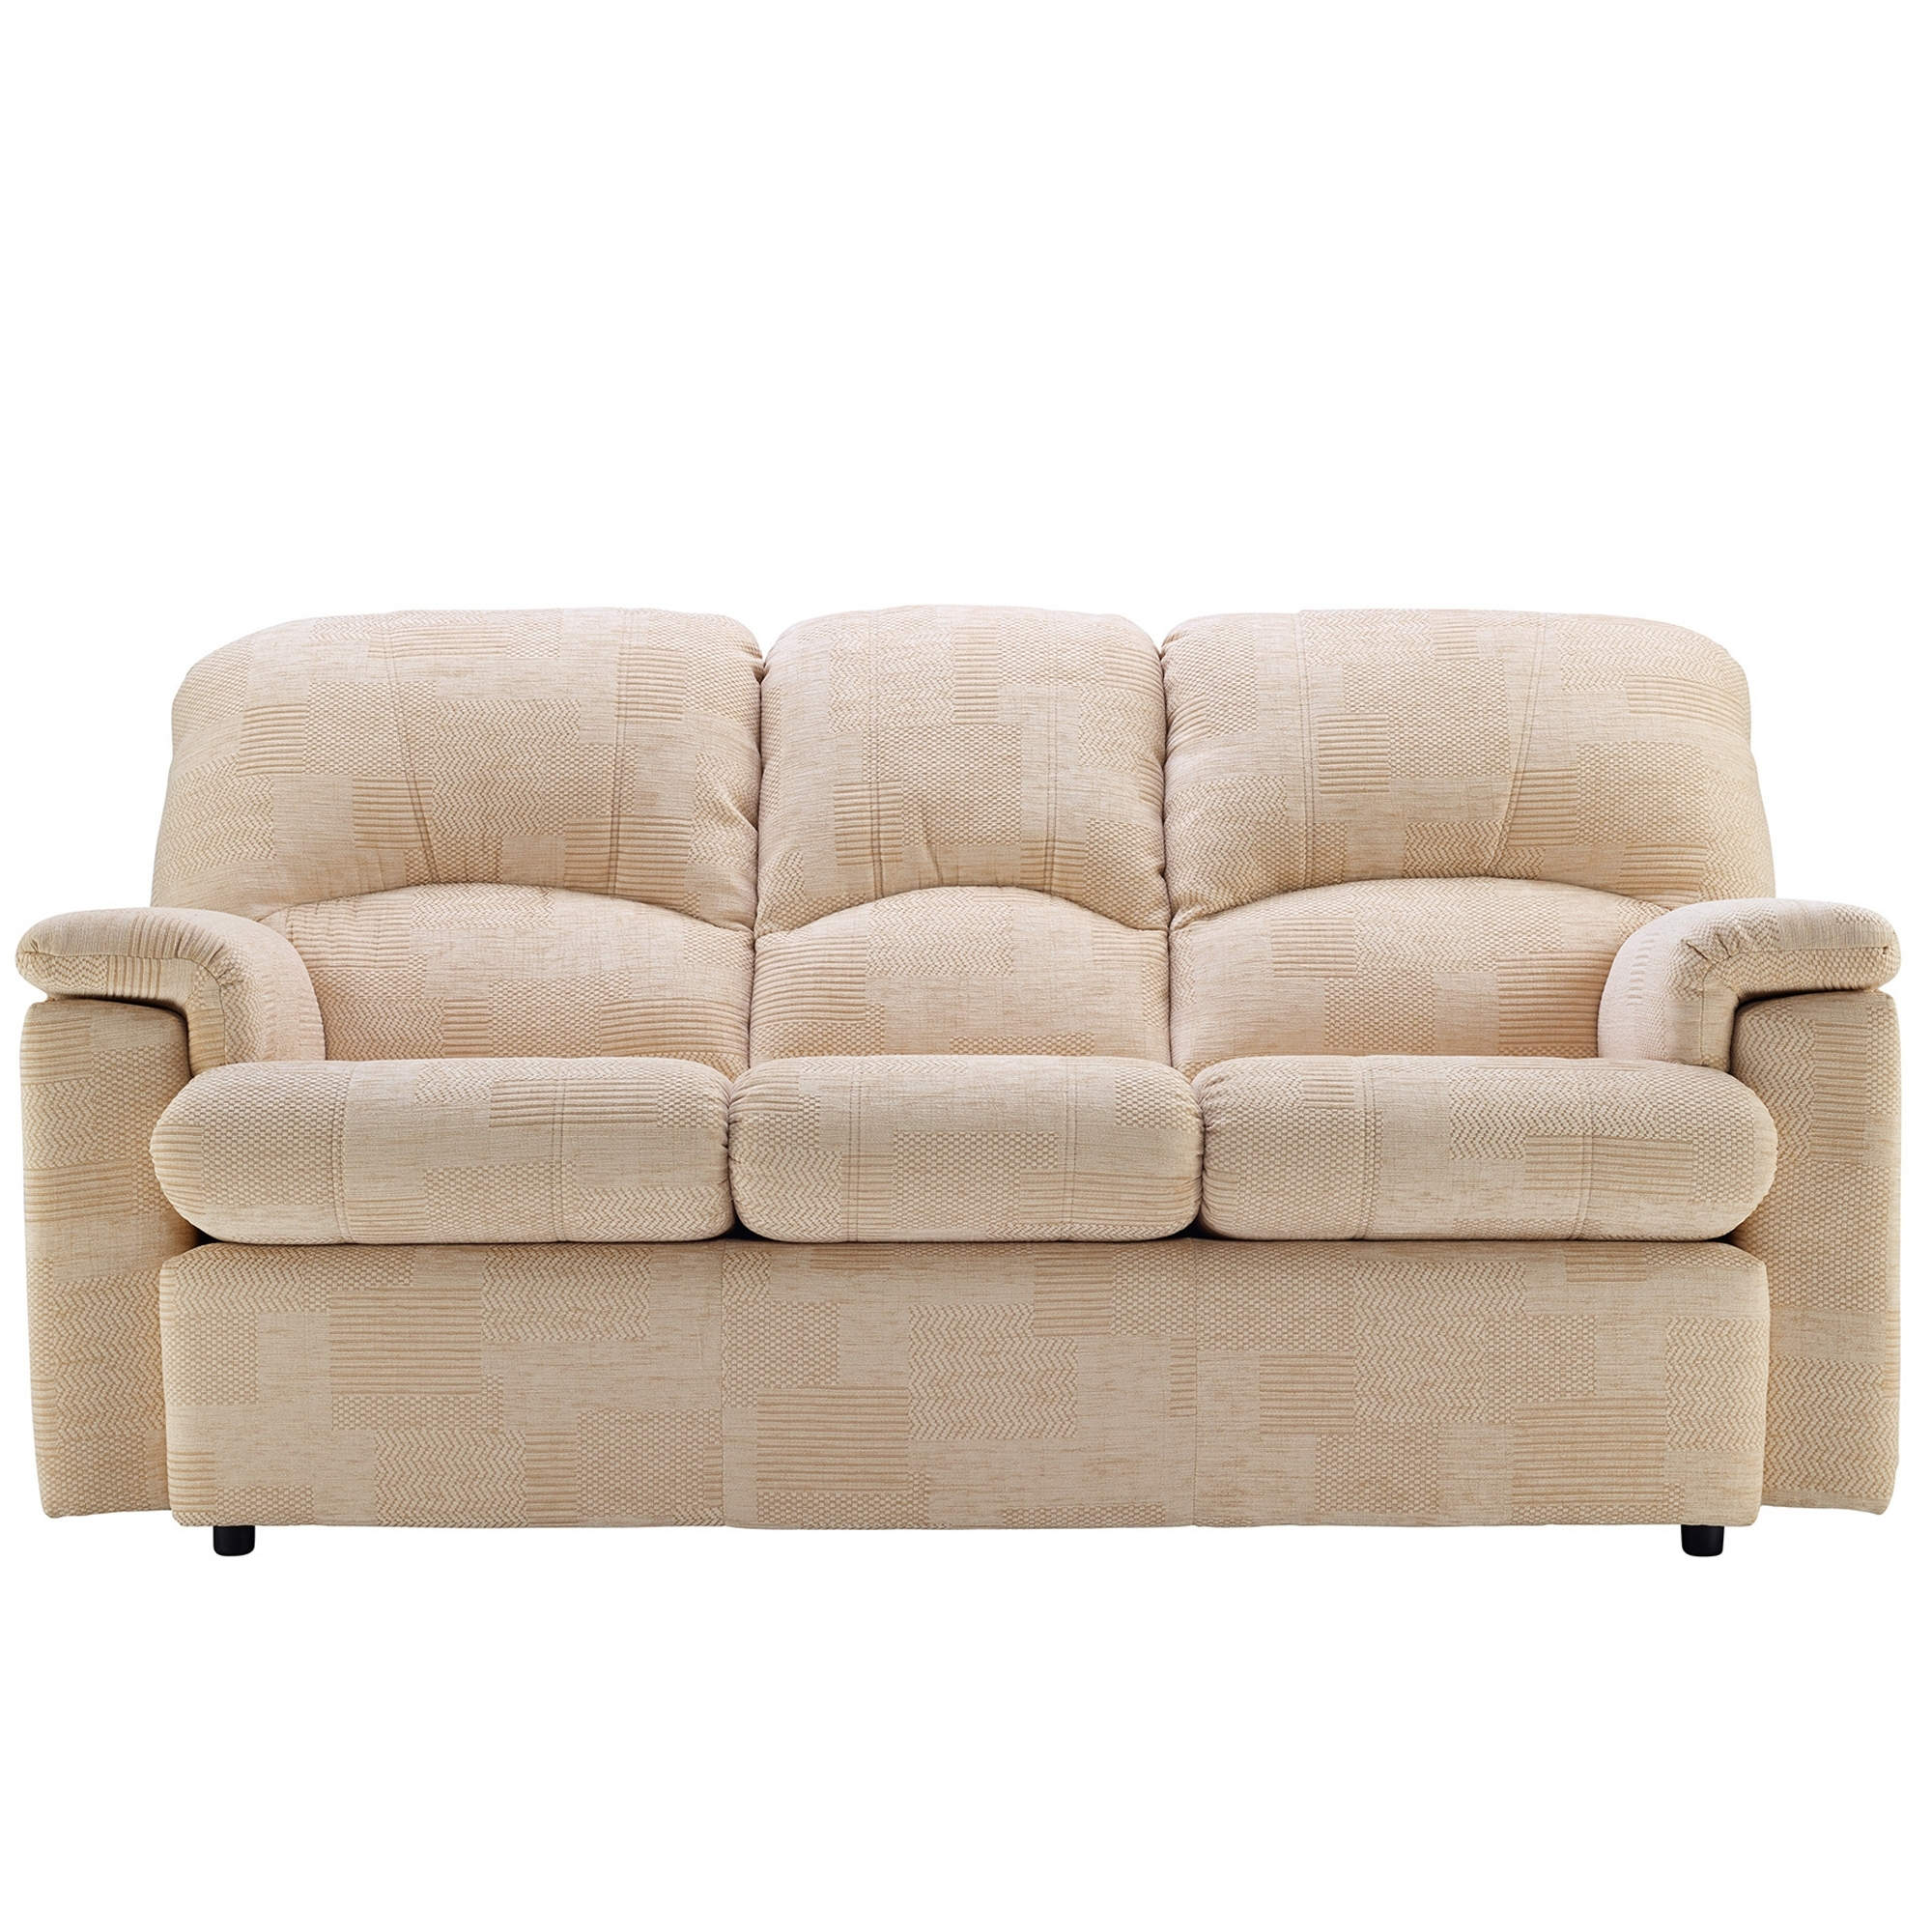 G Plan Chloe 3 Seater Sofa